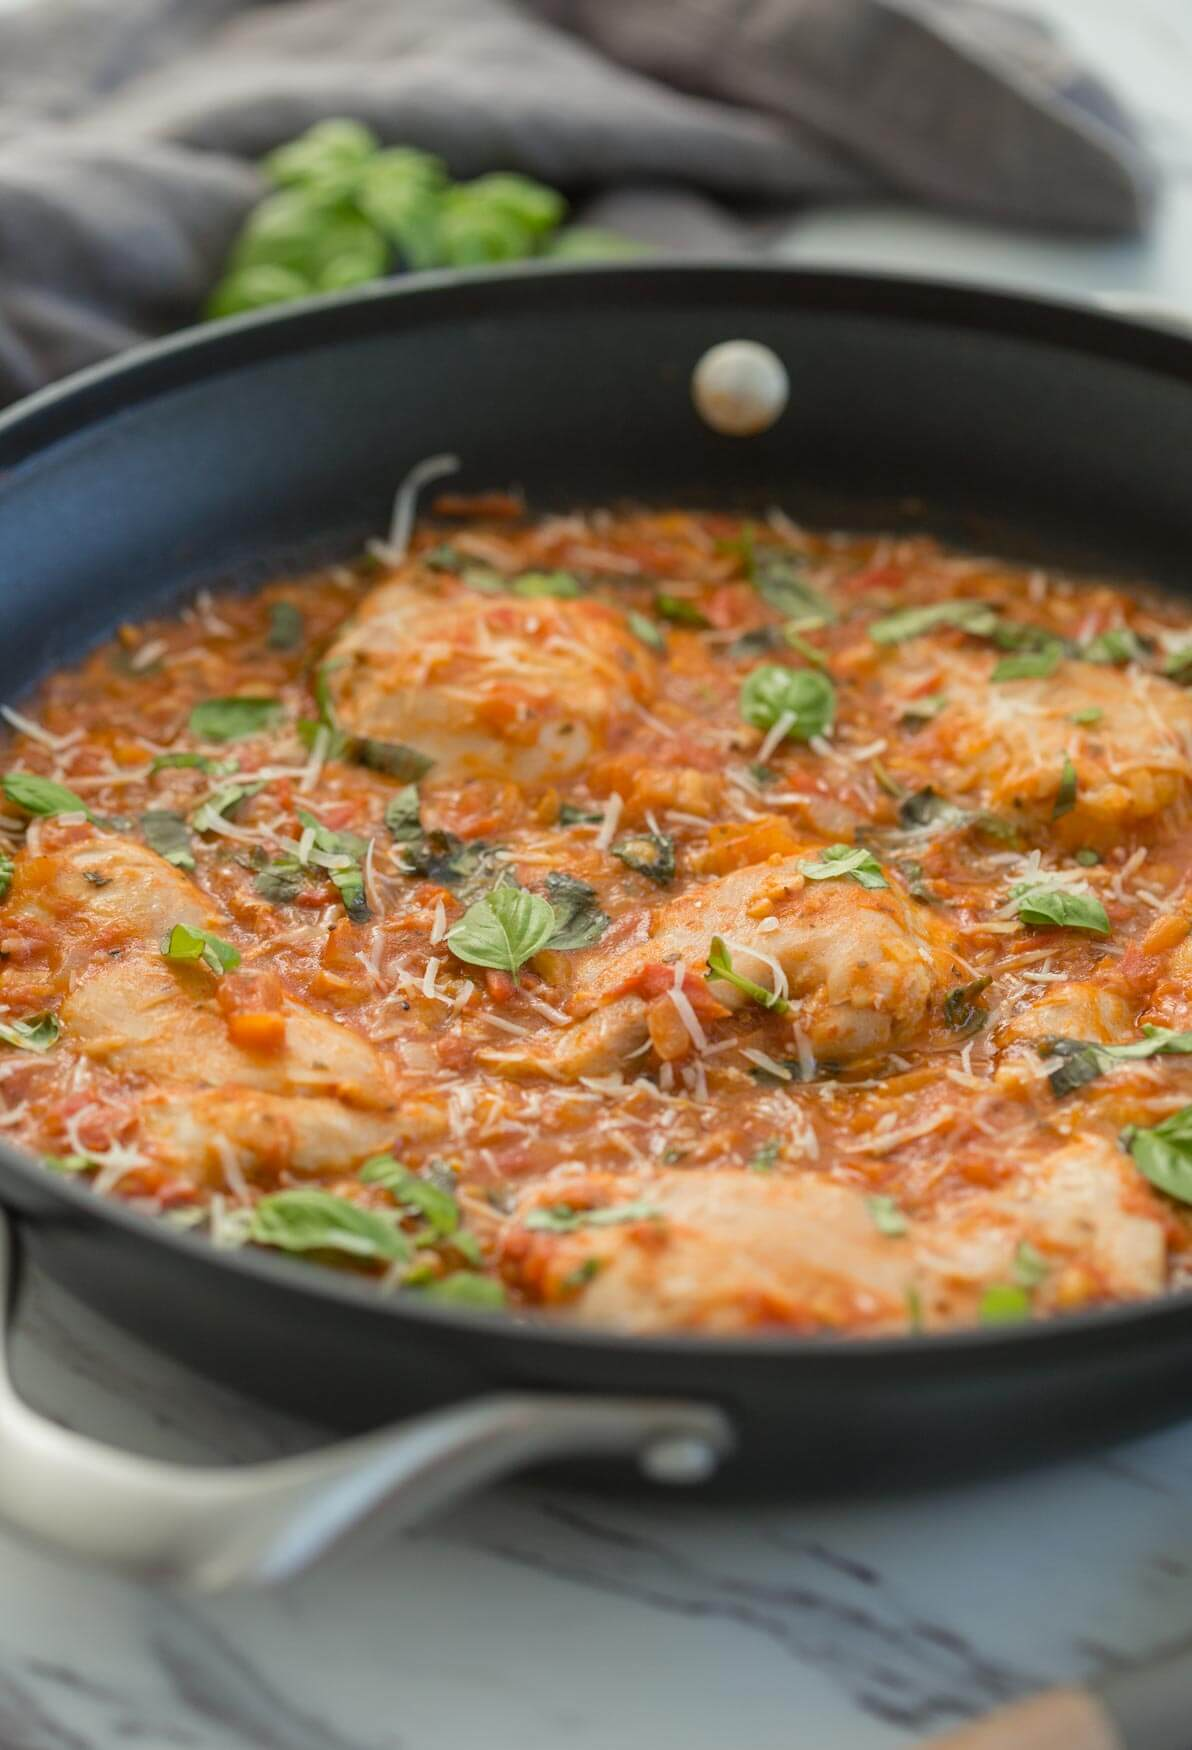 garlic basil chicken with tomato sauce in a large skillet